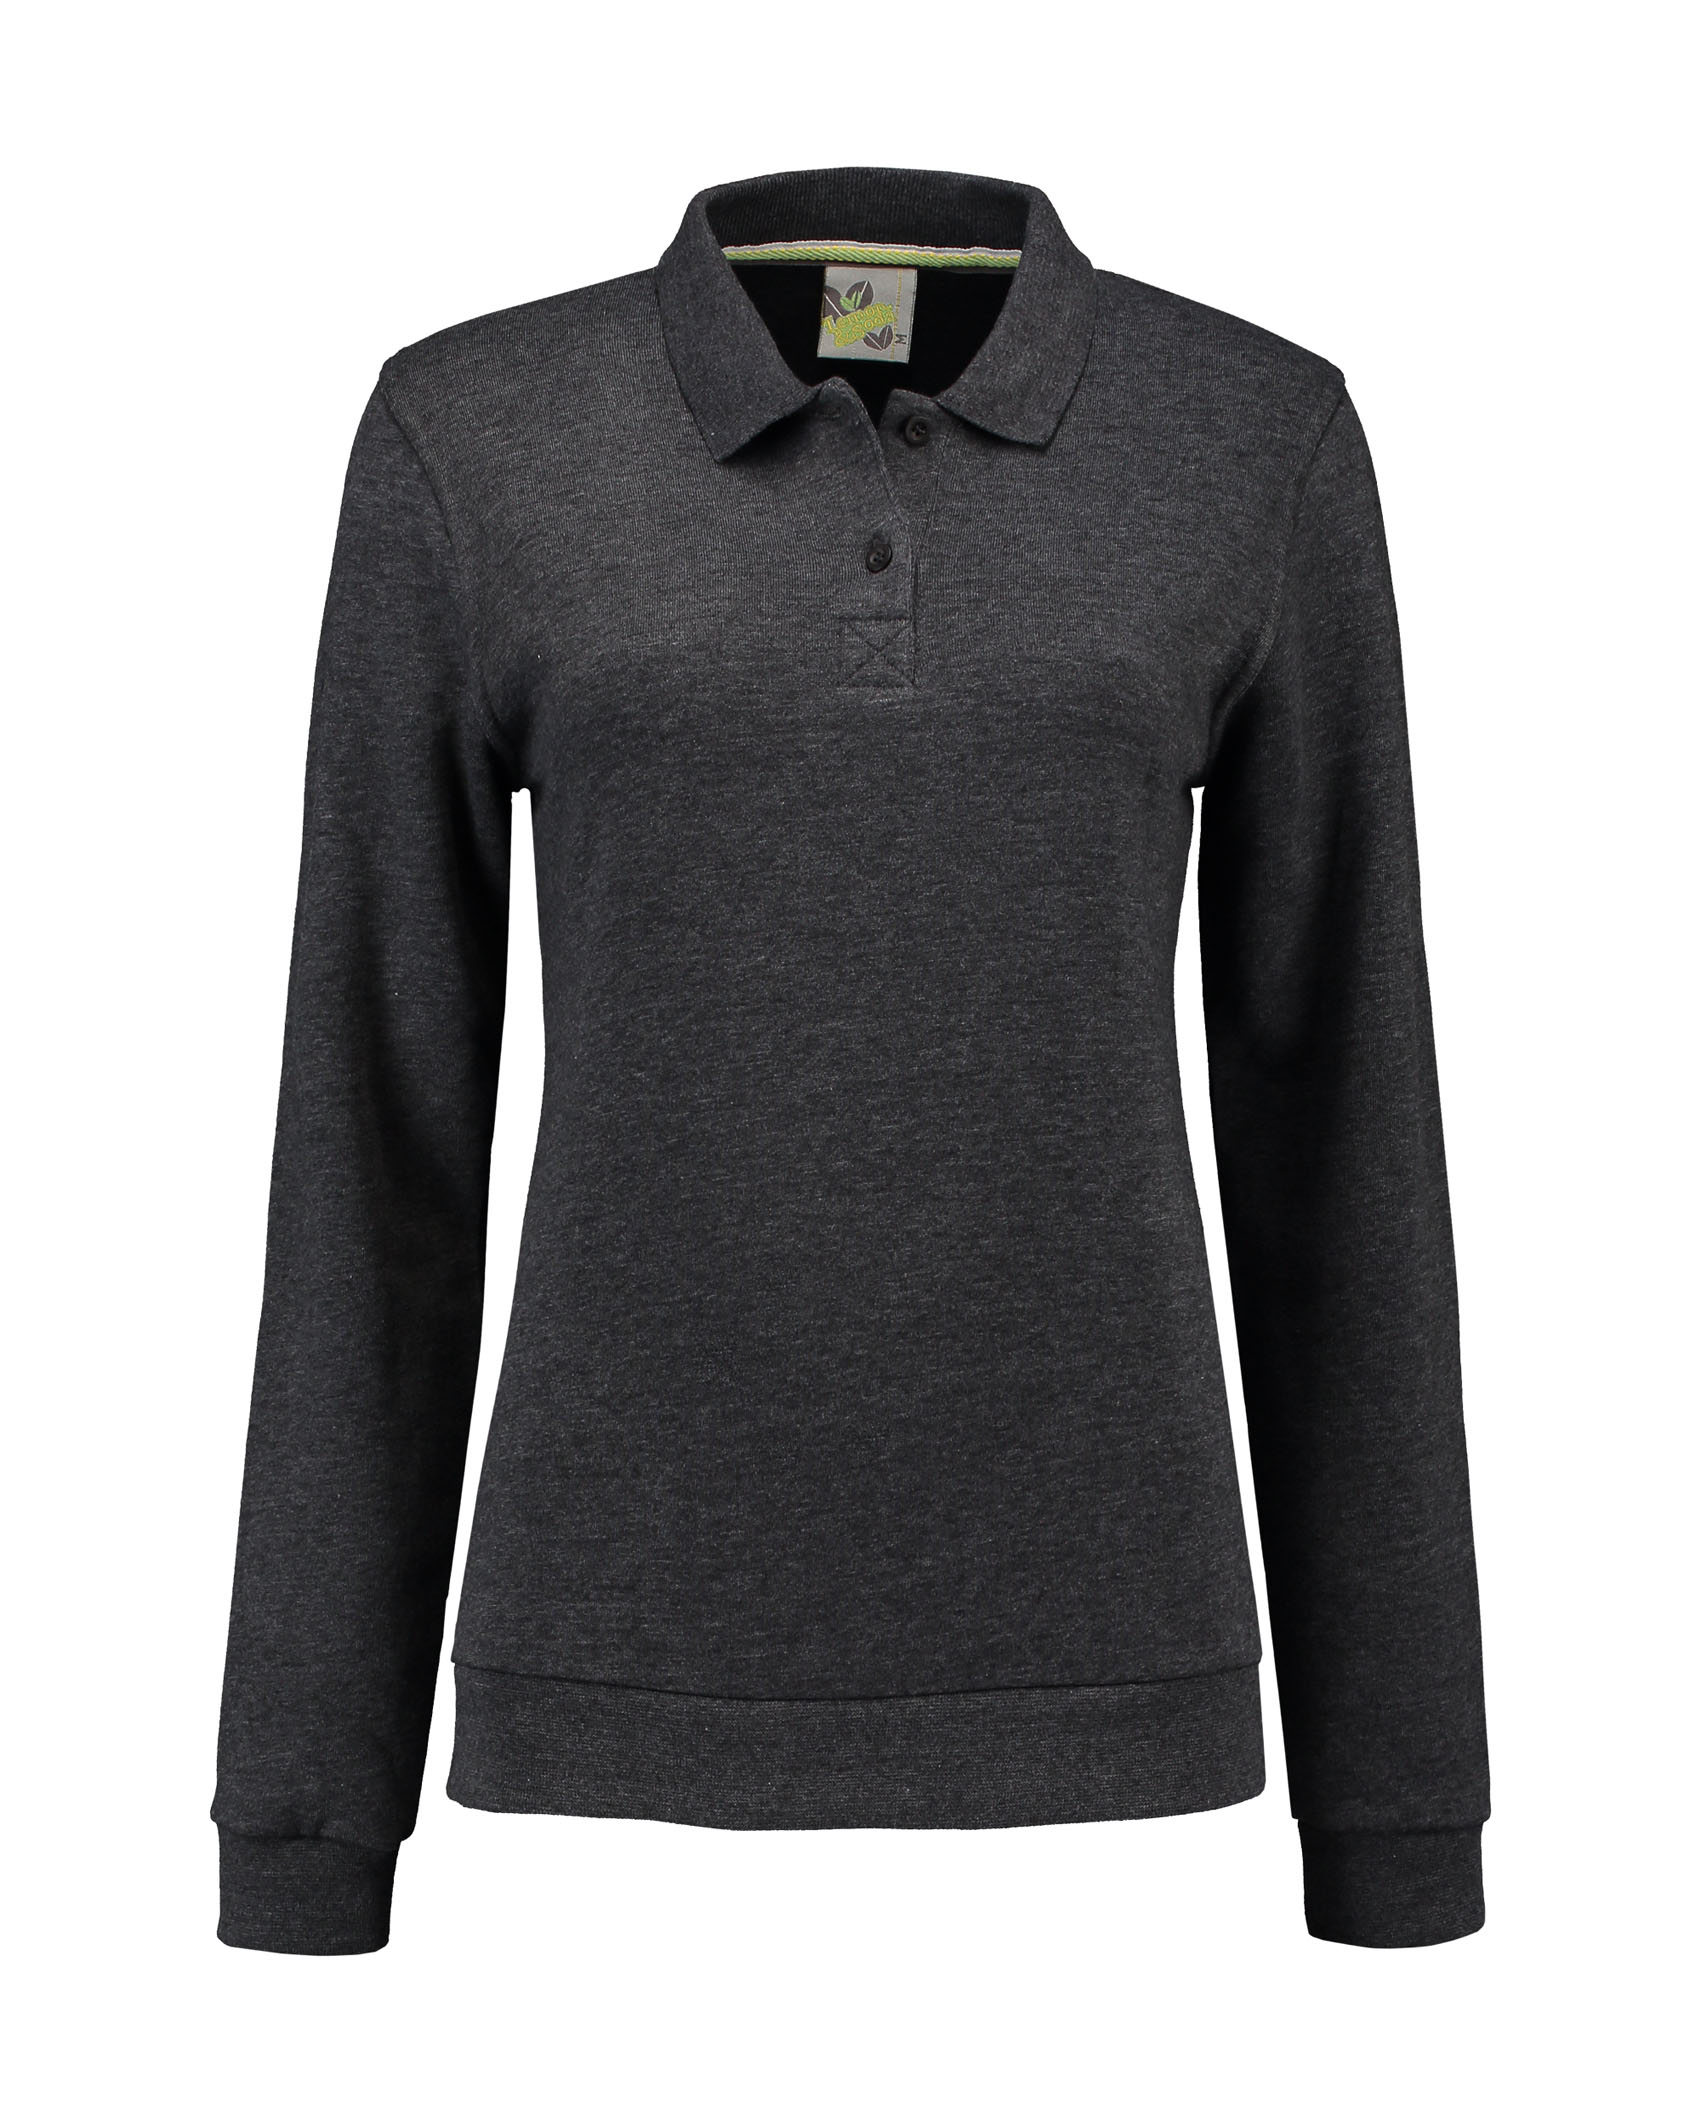 L&S Sweater Polo for her